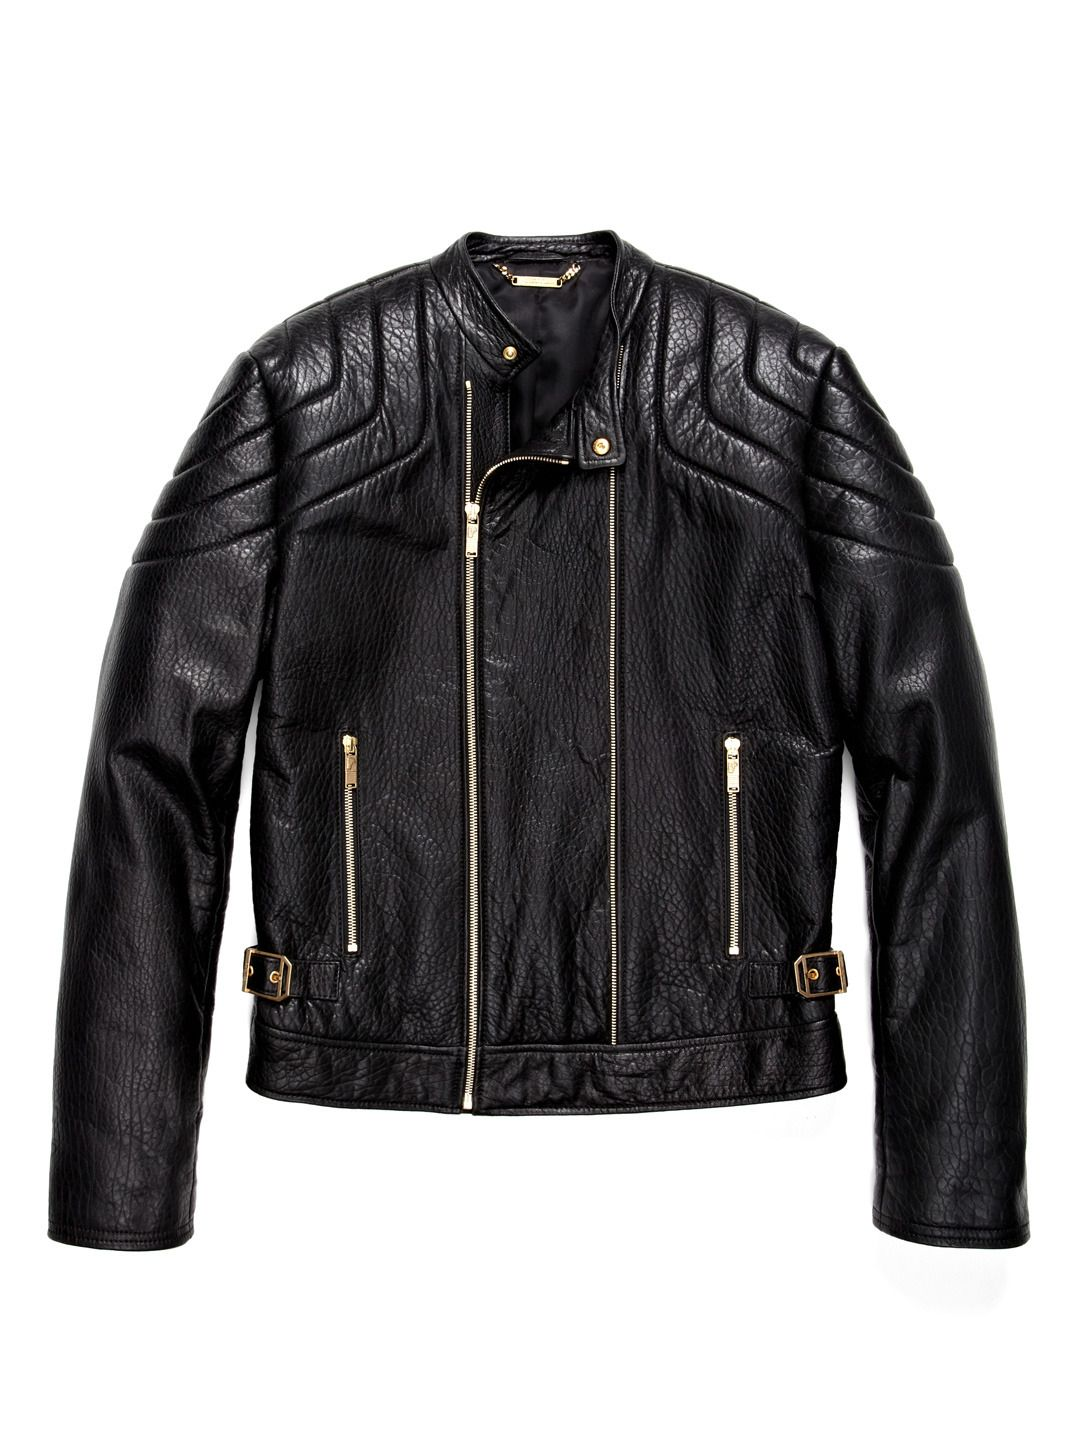 Versace Biker with the gold trims   My Style   Pinterest   Versace ... e9a42b42fb9